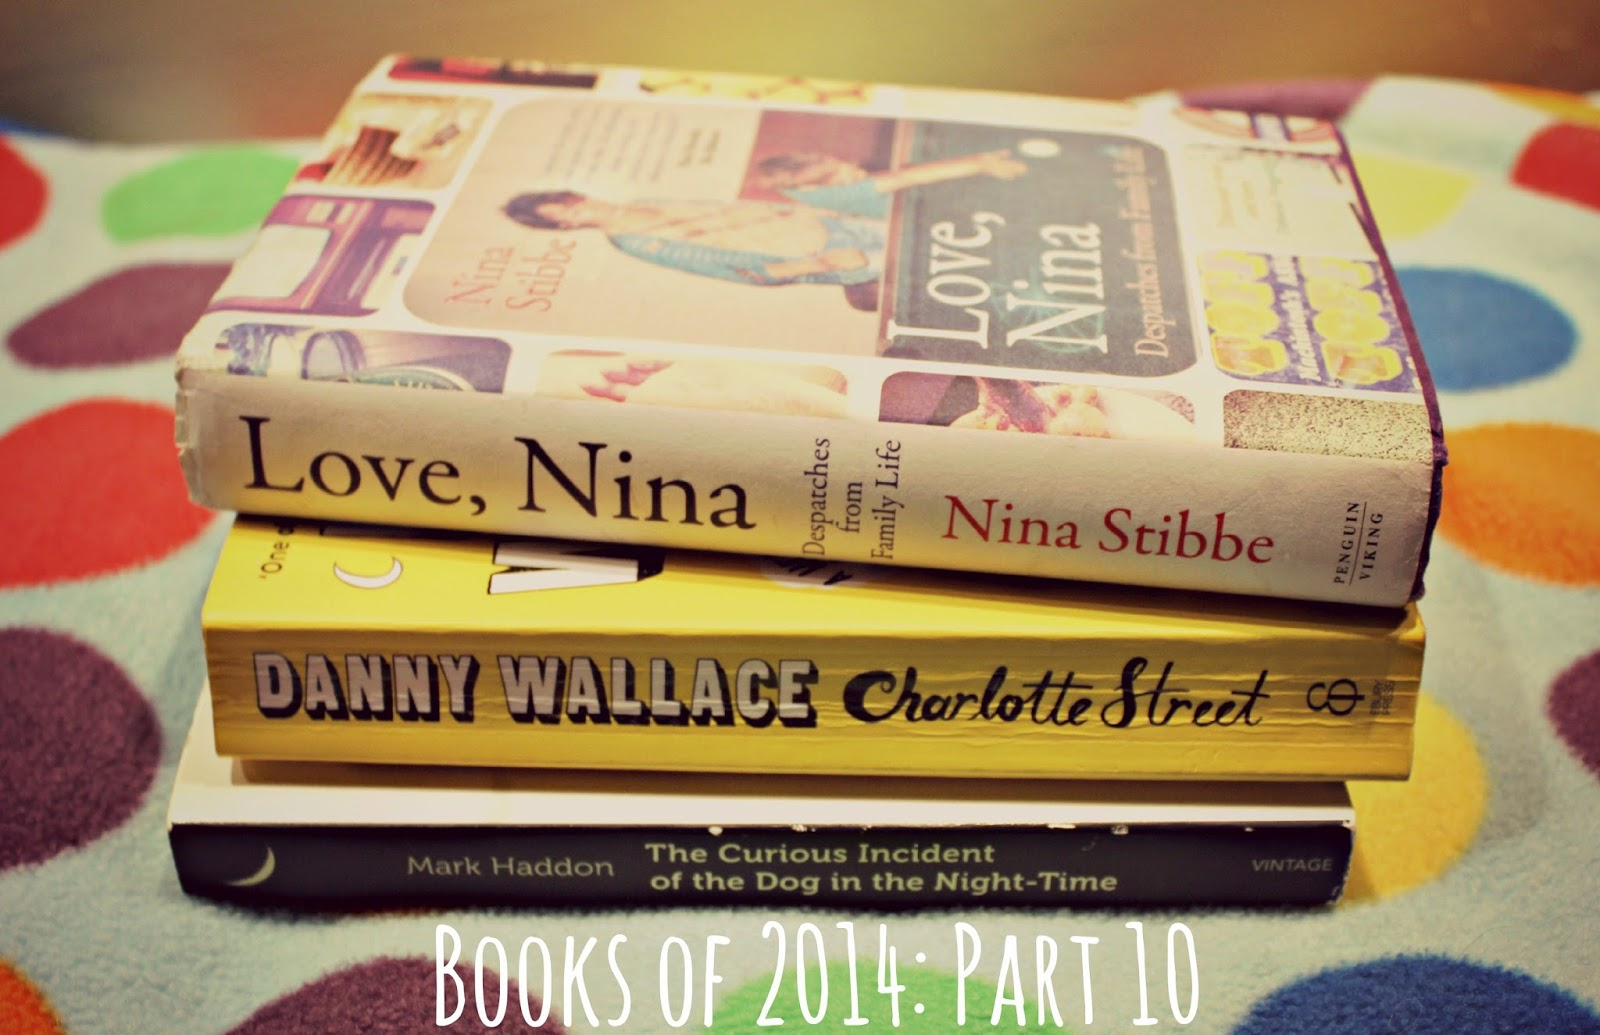 Books of 2014: Part 10